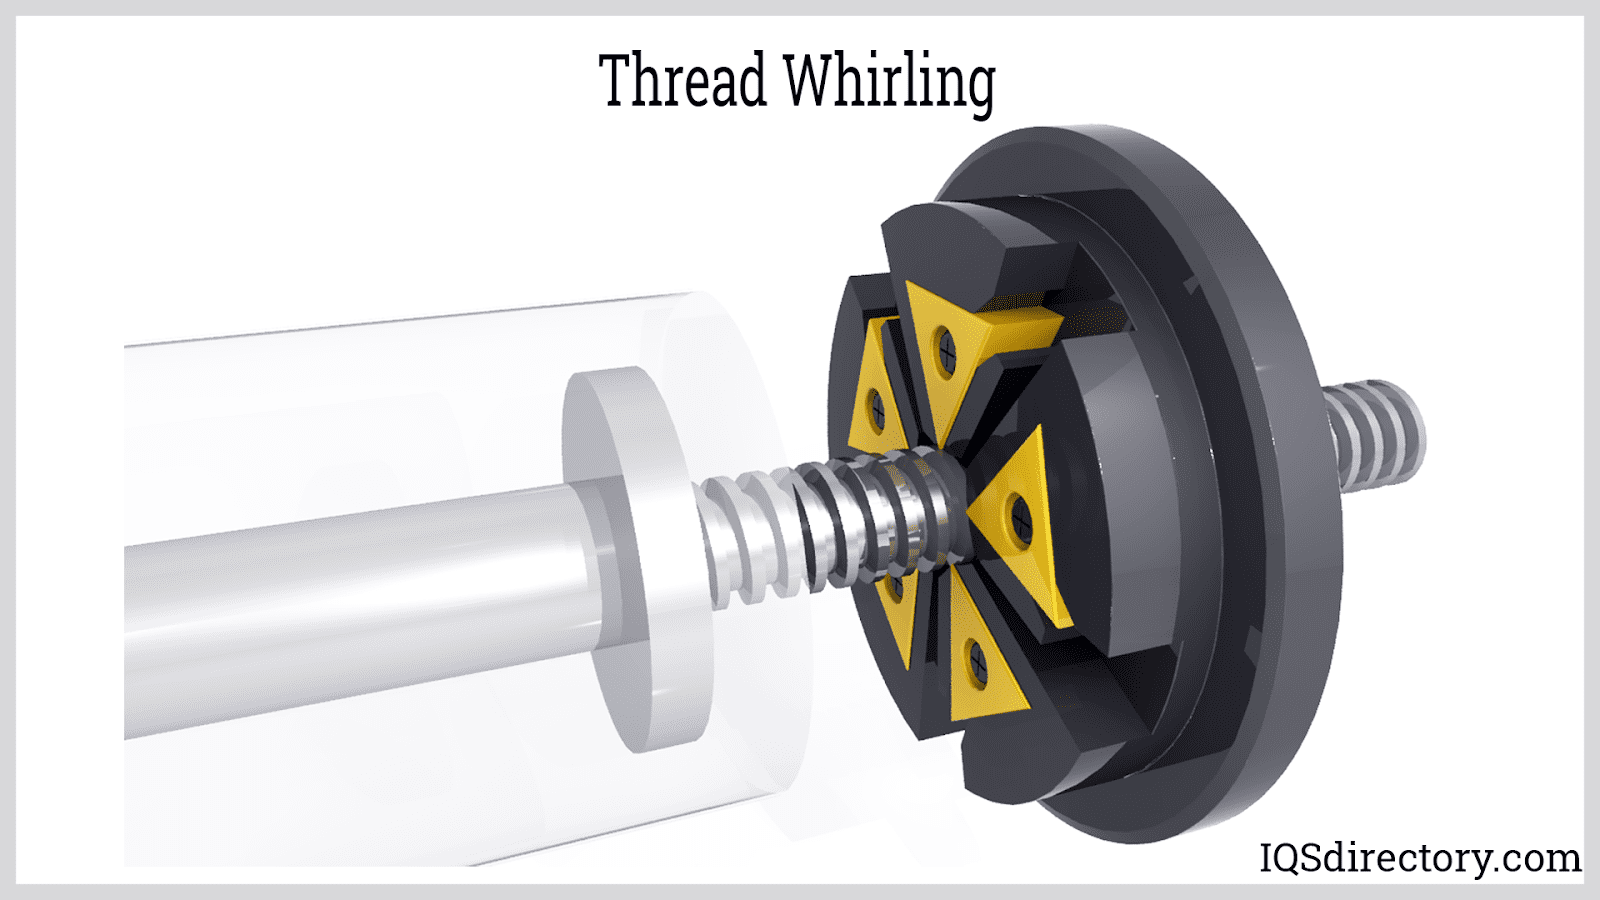 Thread Whirling